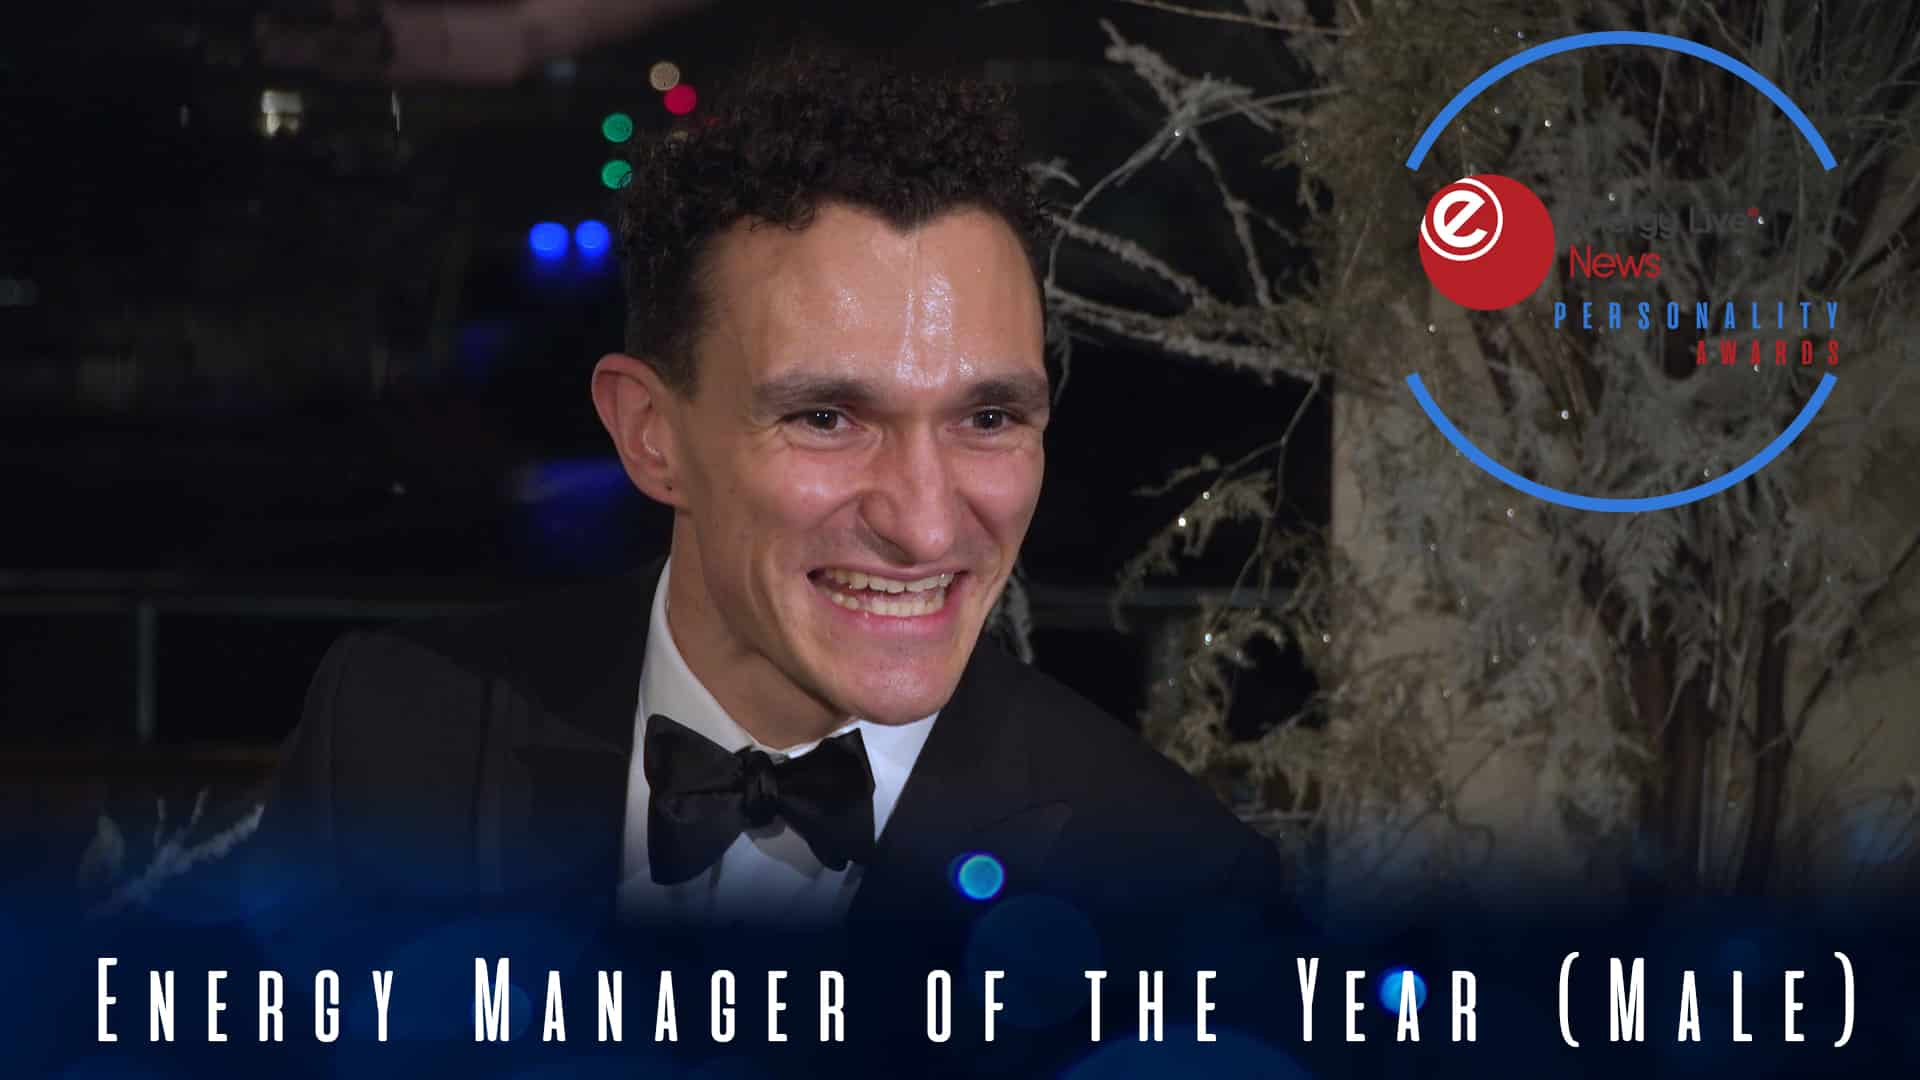 Tom Parrott takes the Energy Manager of the Year (Male) award